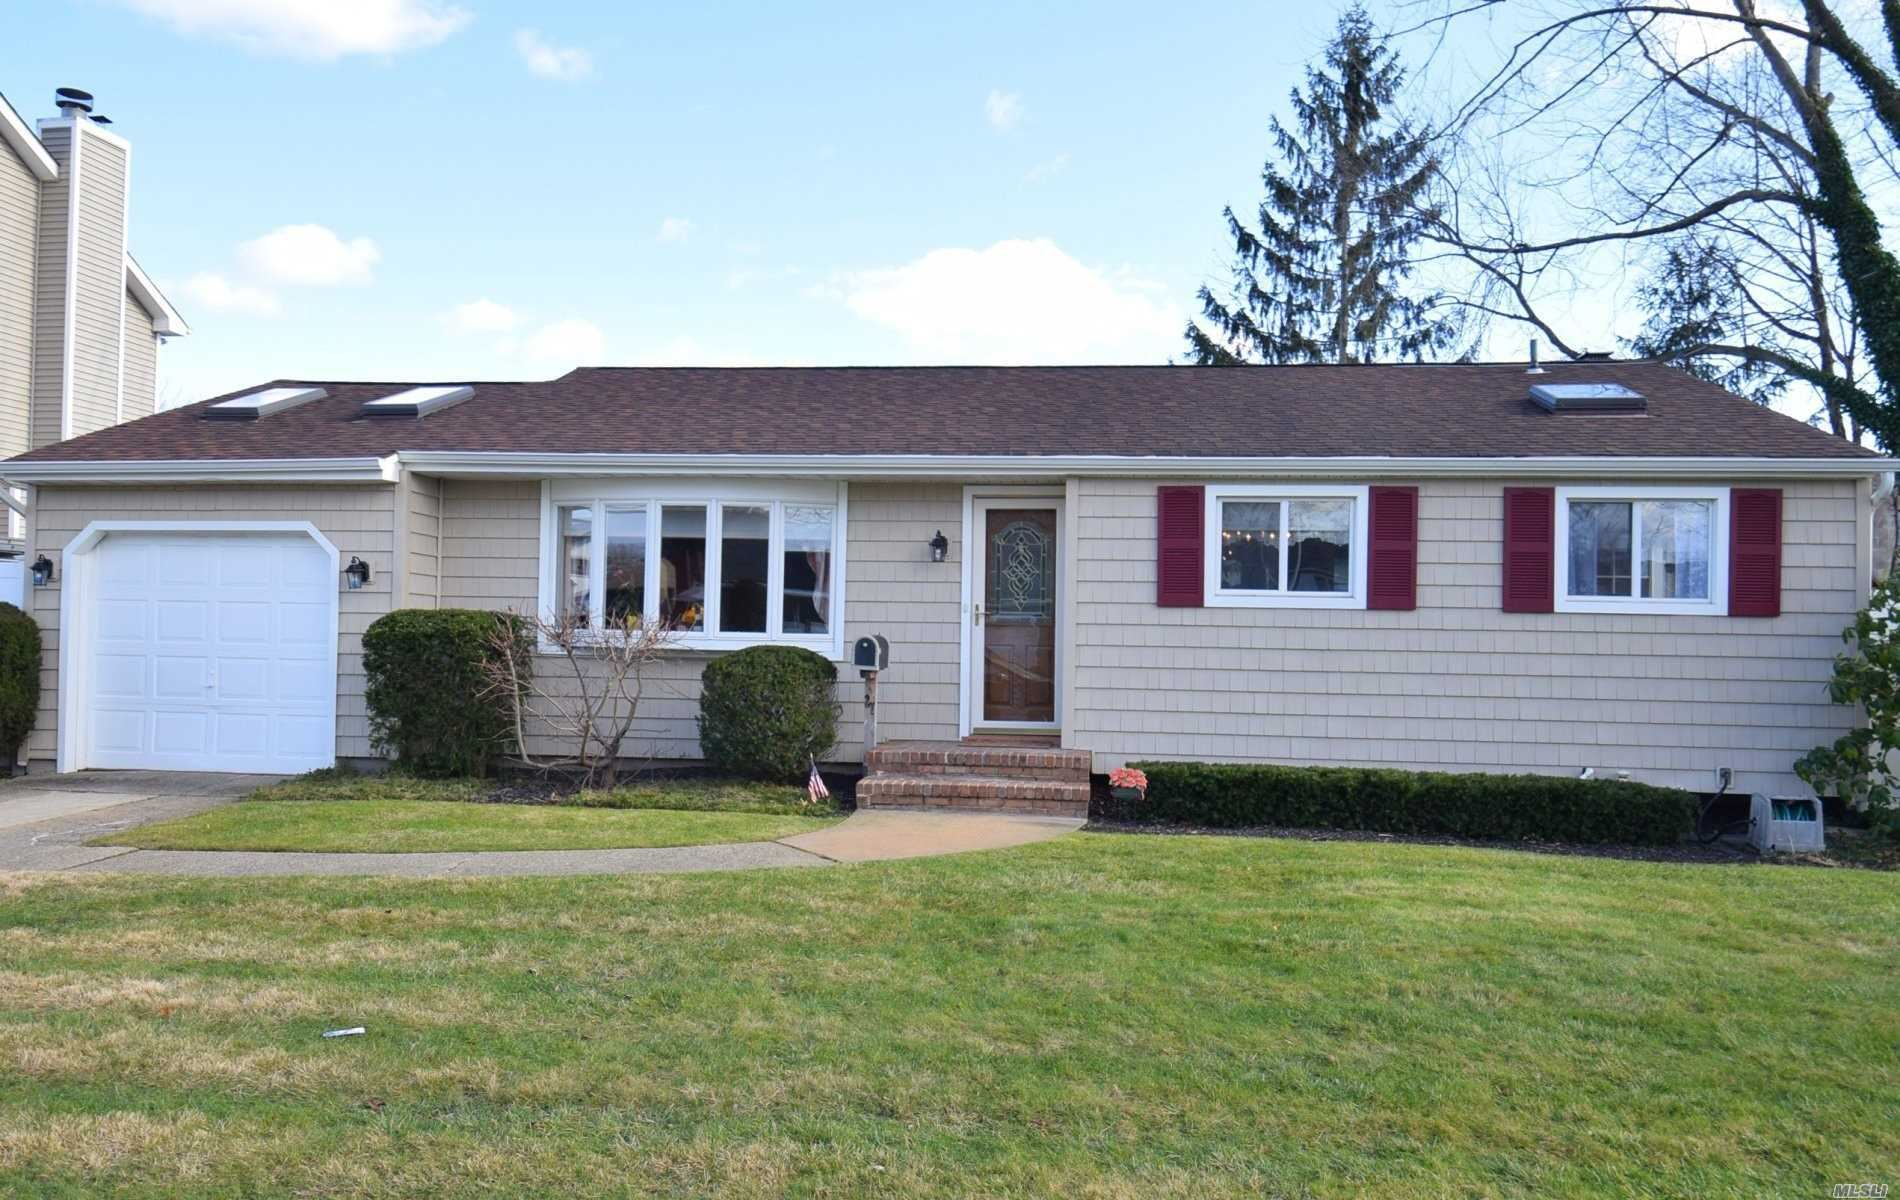 27 Evergreen Place, Deer Park, NY 11729 - MLS#: 3184899